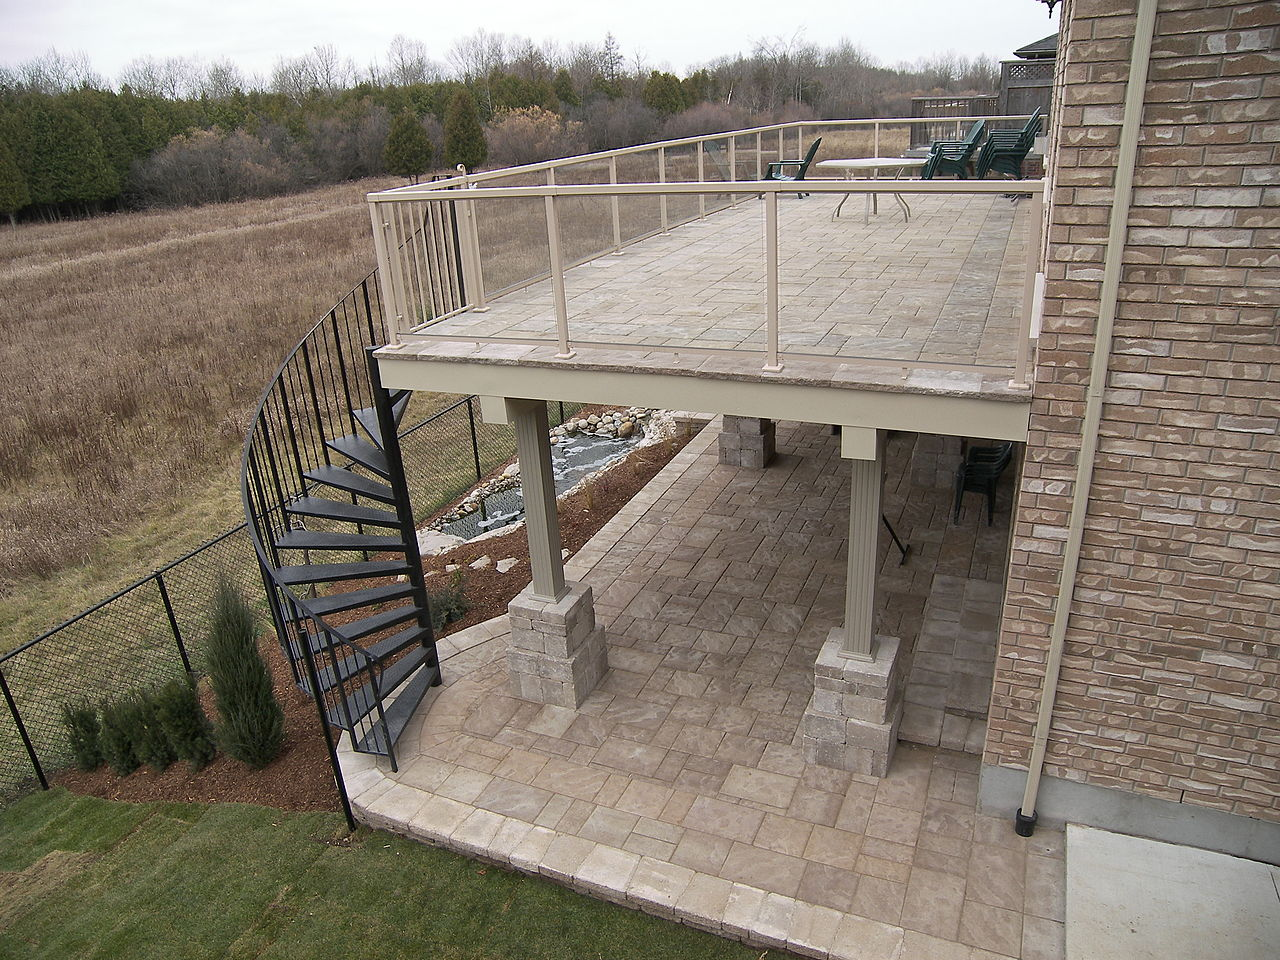 File:Upper Level Paver Deck.JPG - Wikimedia Commons